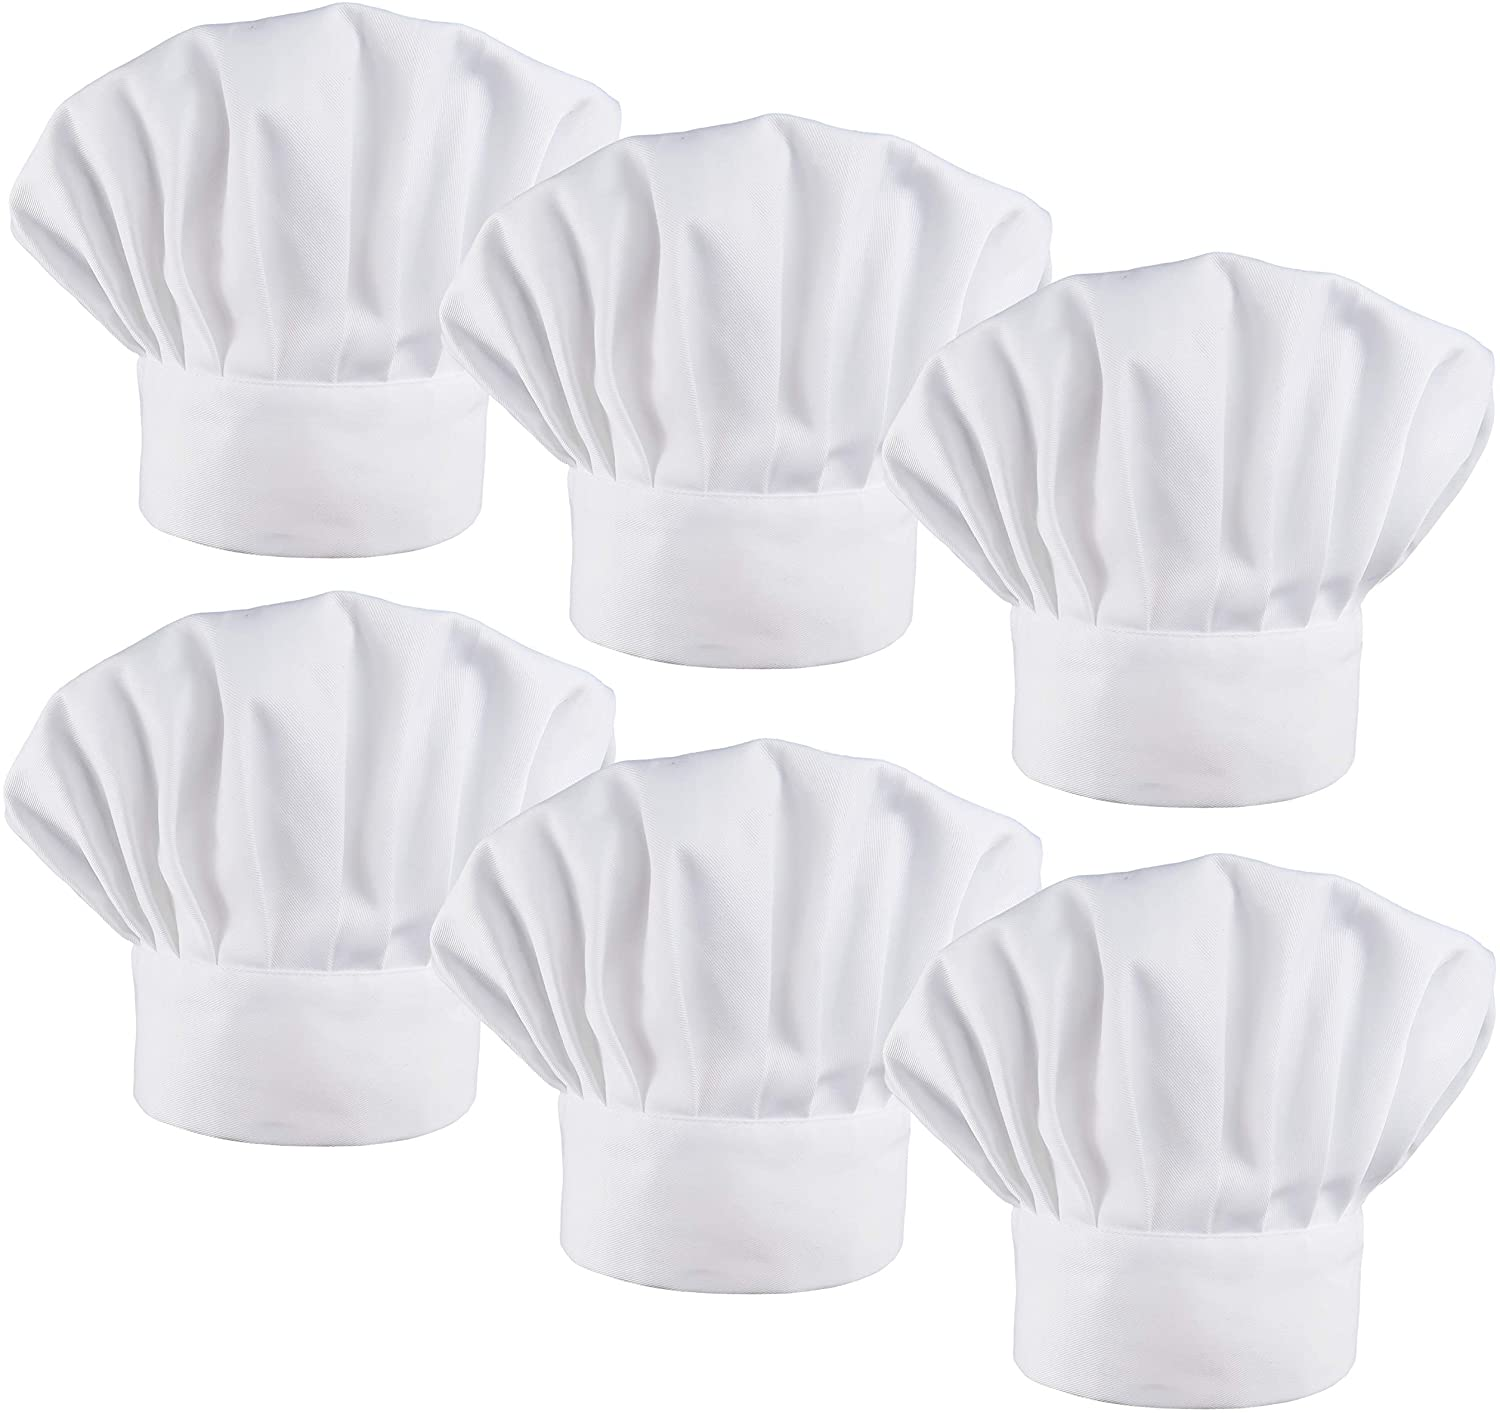 LilMents 6 Pack Chef Hat San Antonio San Diego Mall Mall Set Kitchen Baker Cook Elastic Catering